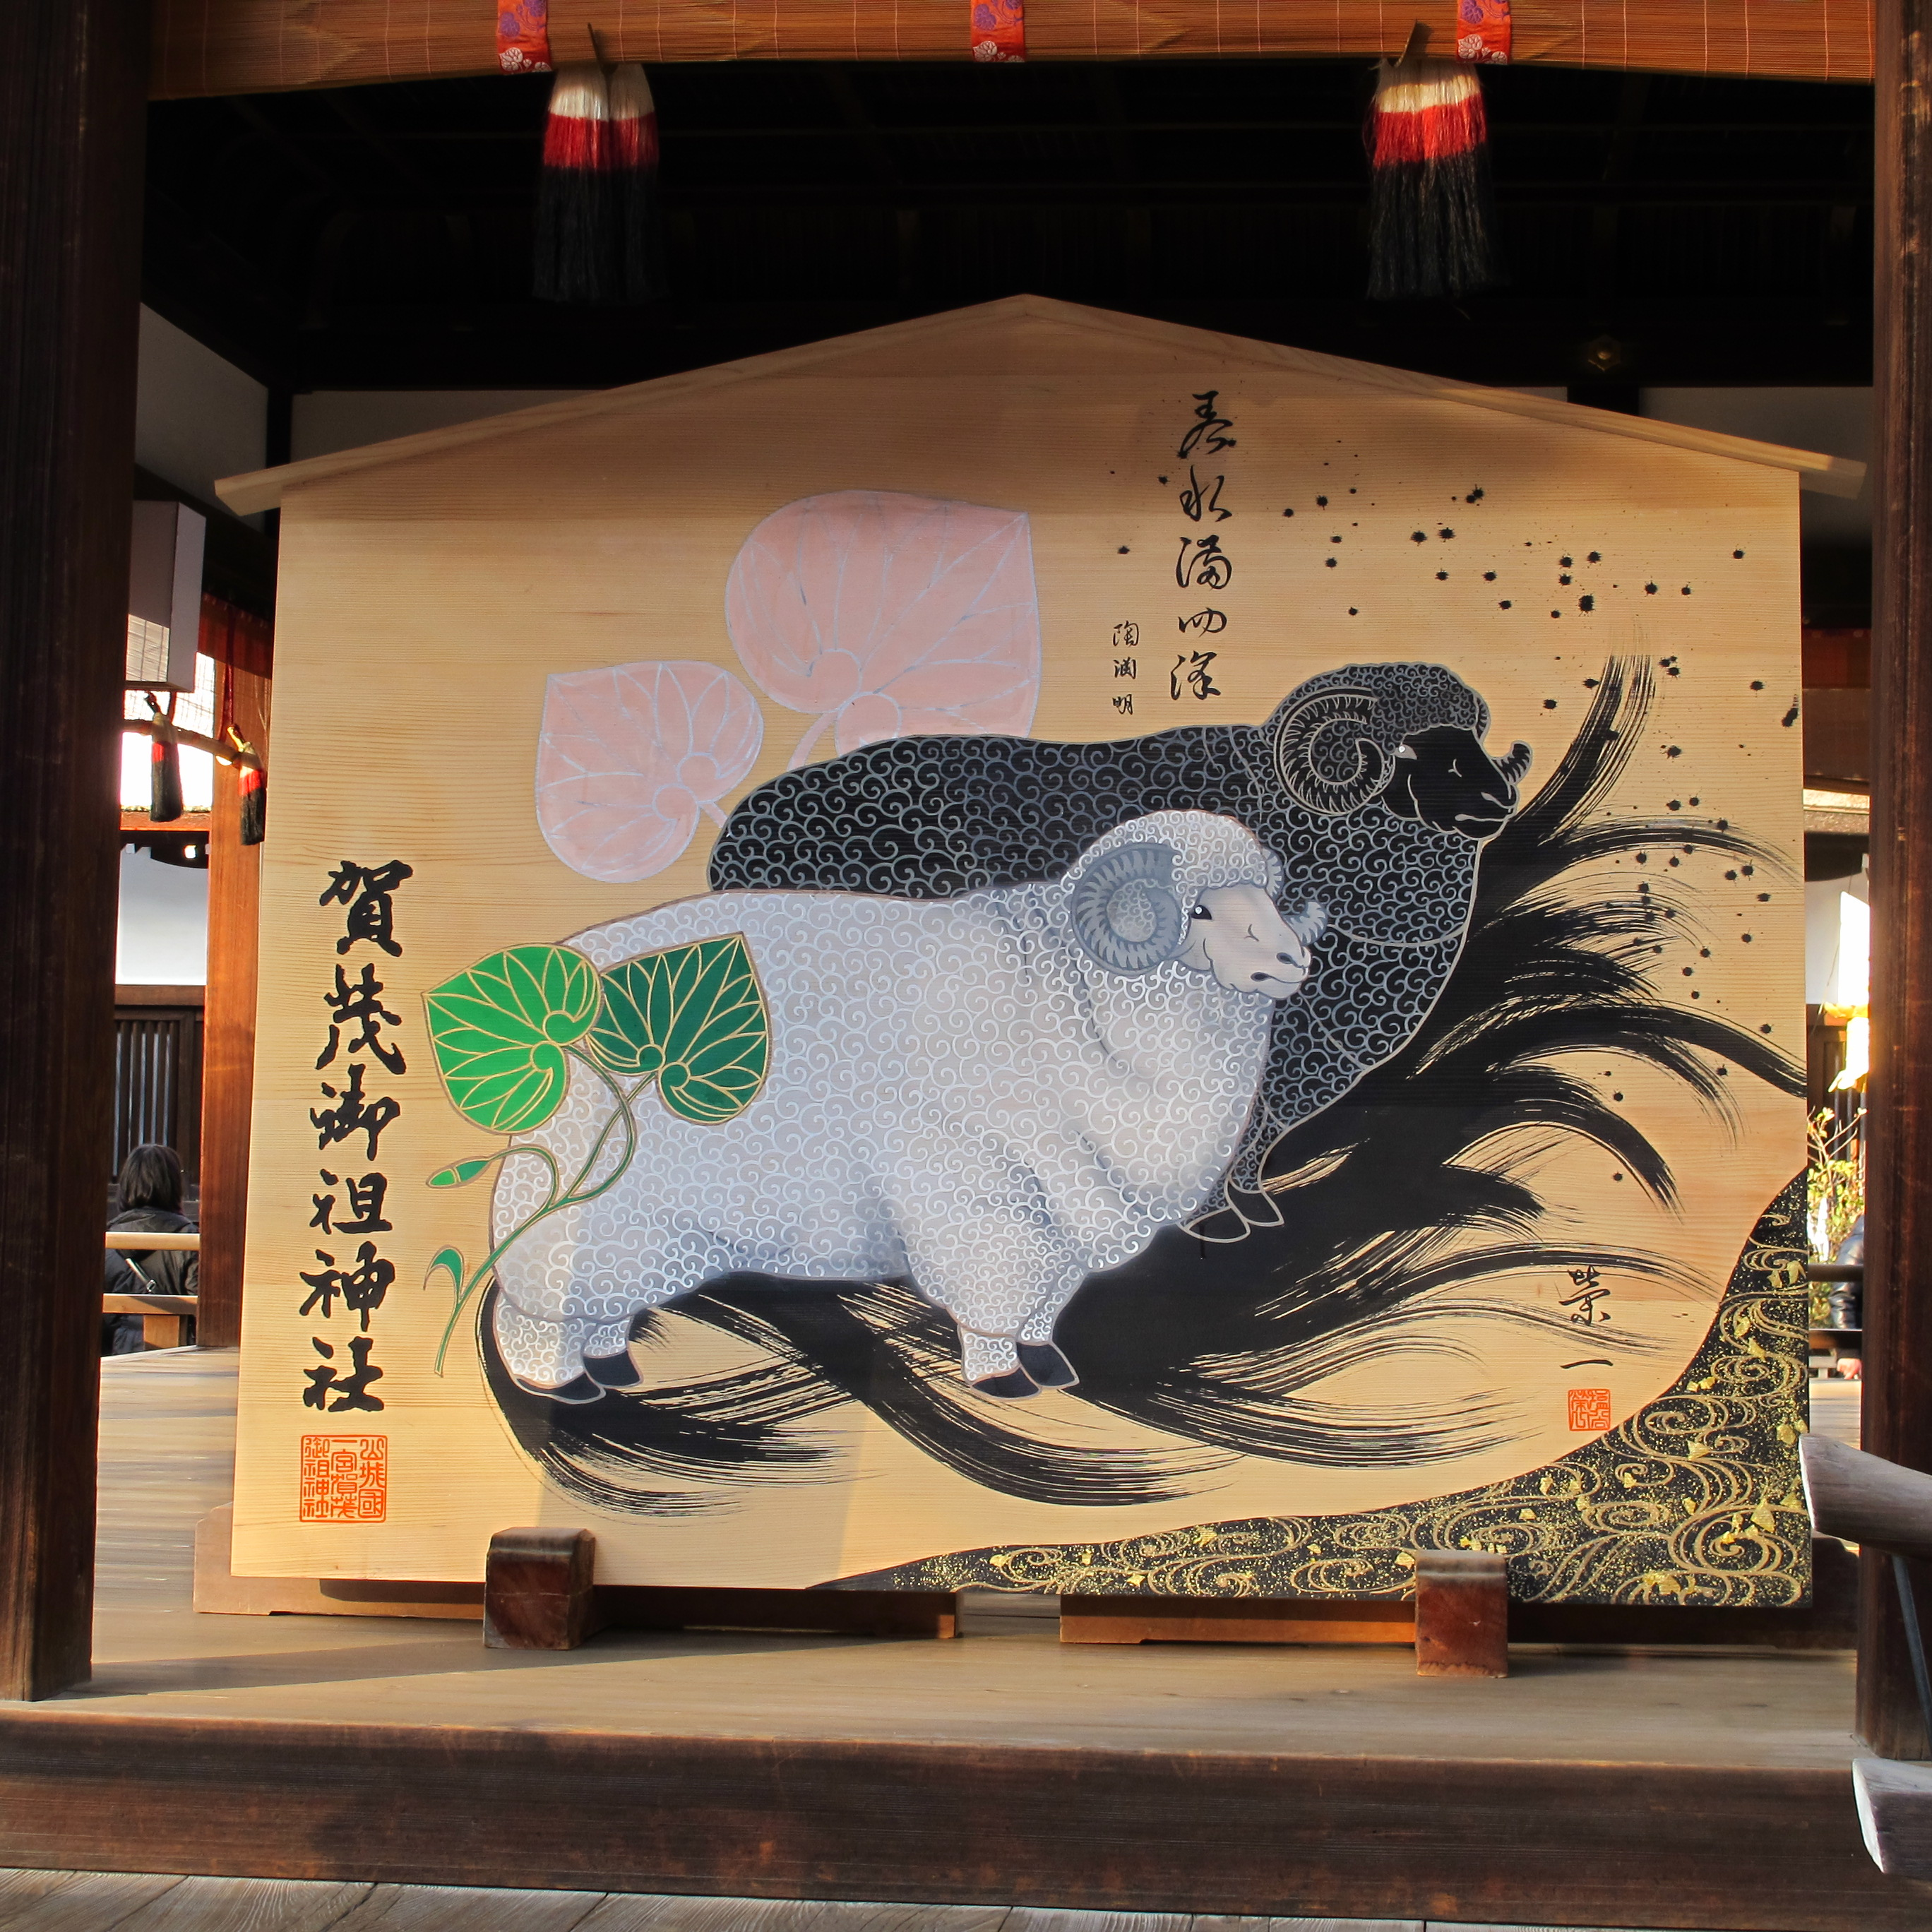 To greet the new year, the shrine always displays a wonderful picture of the current year's zodiac animal.